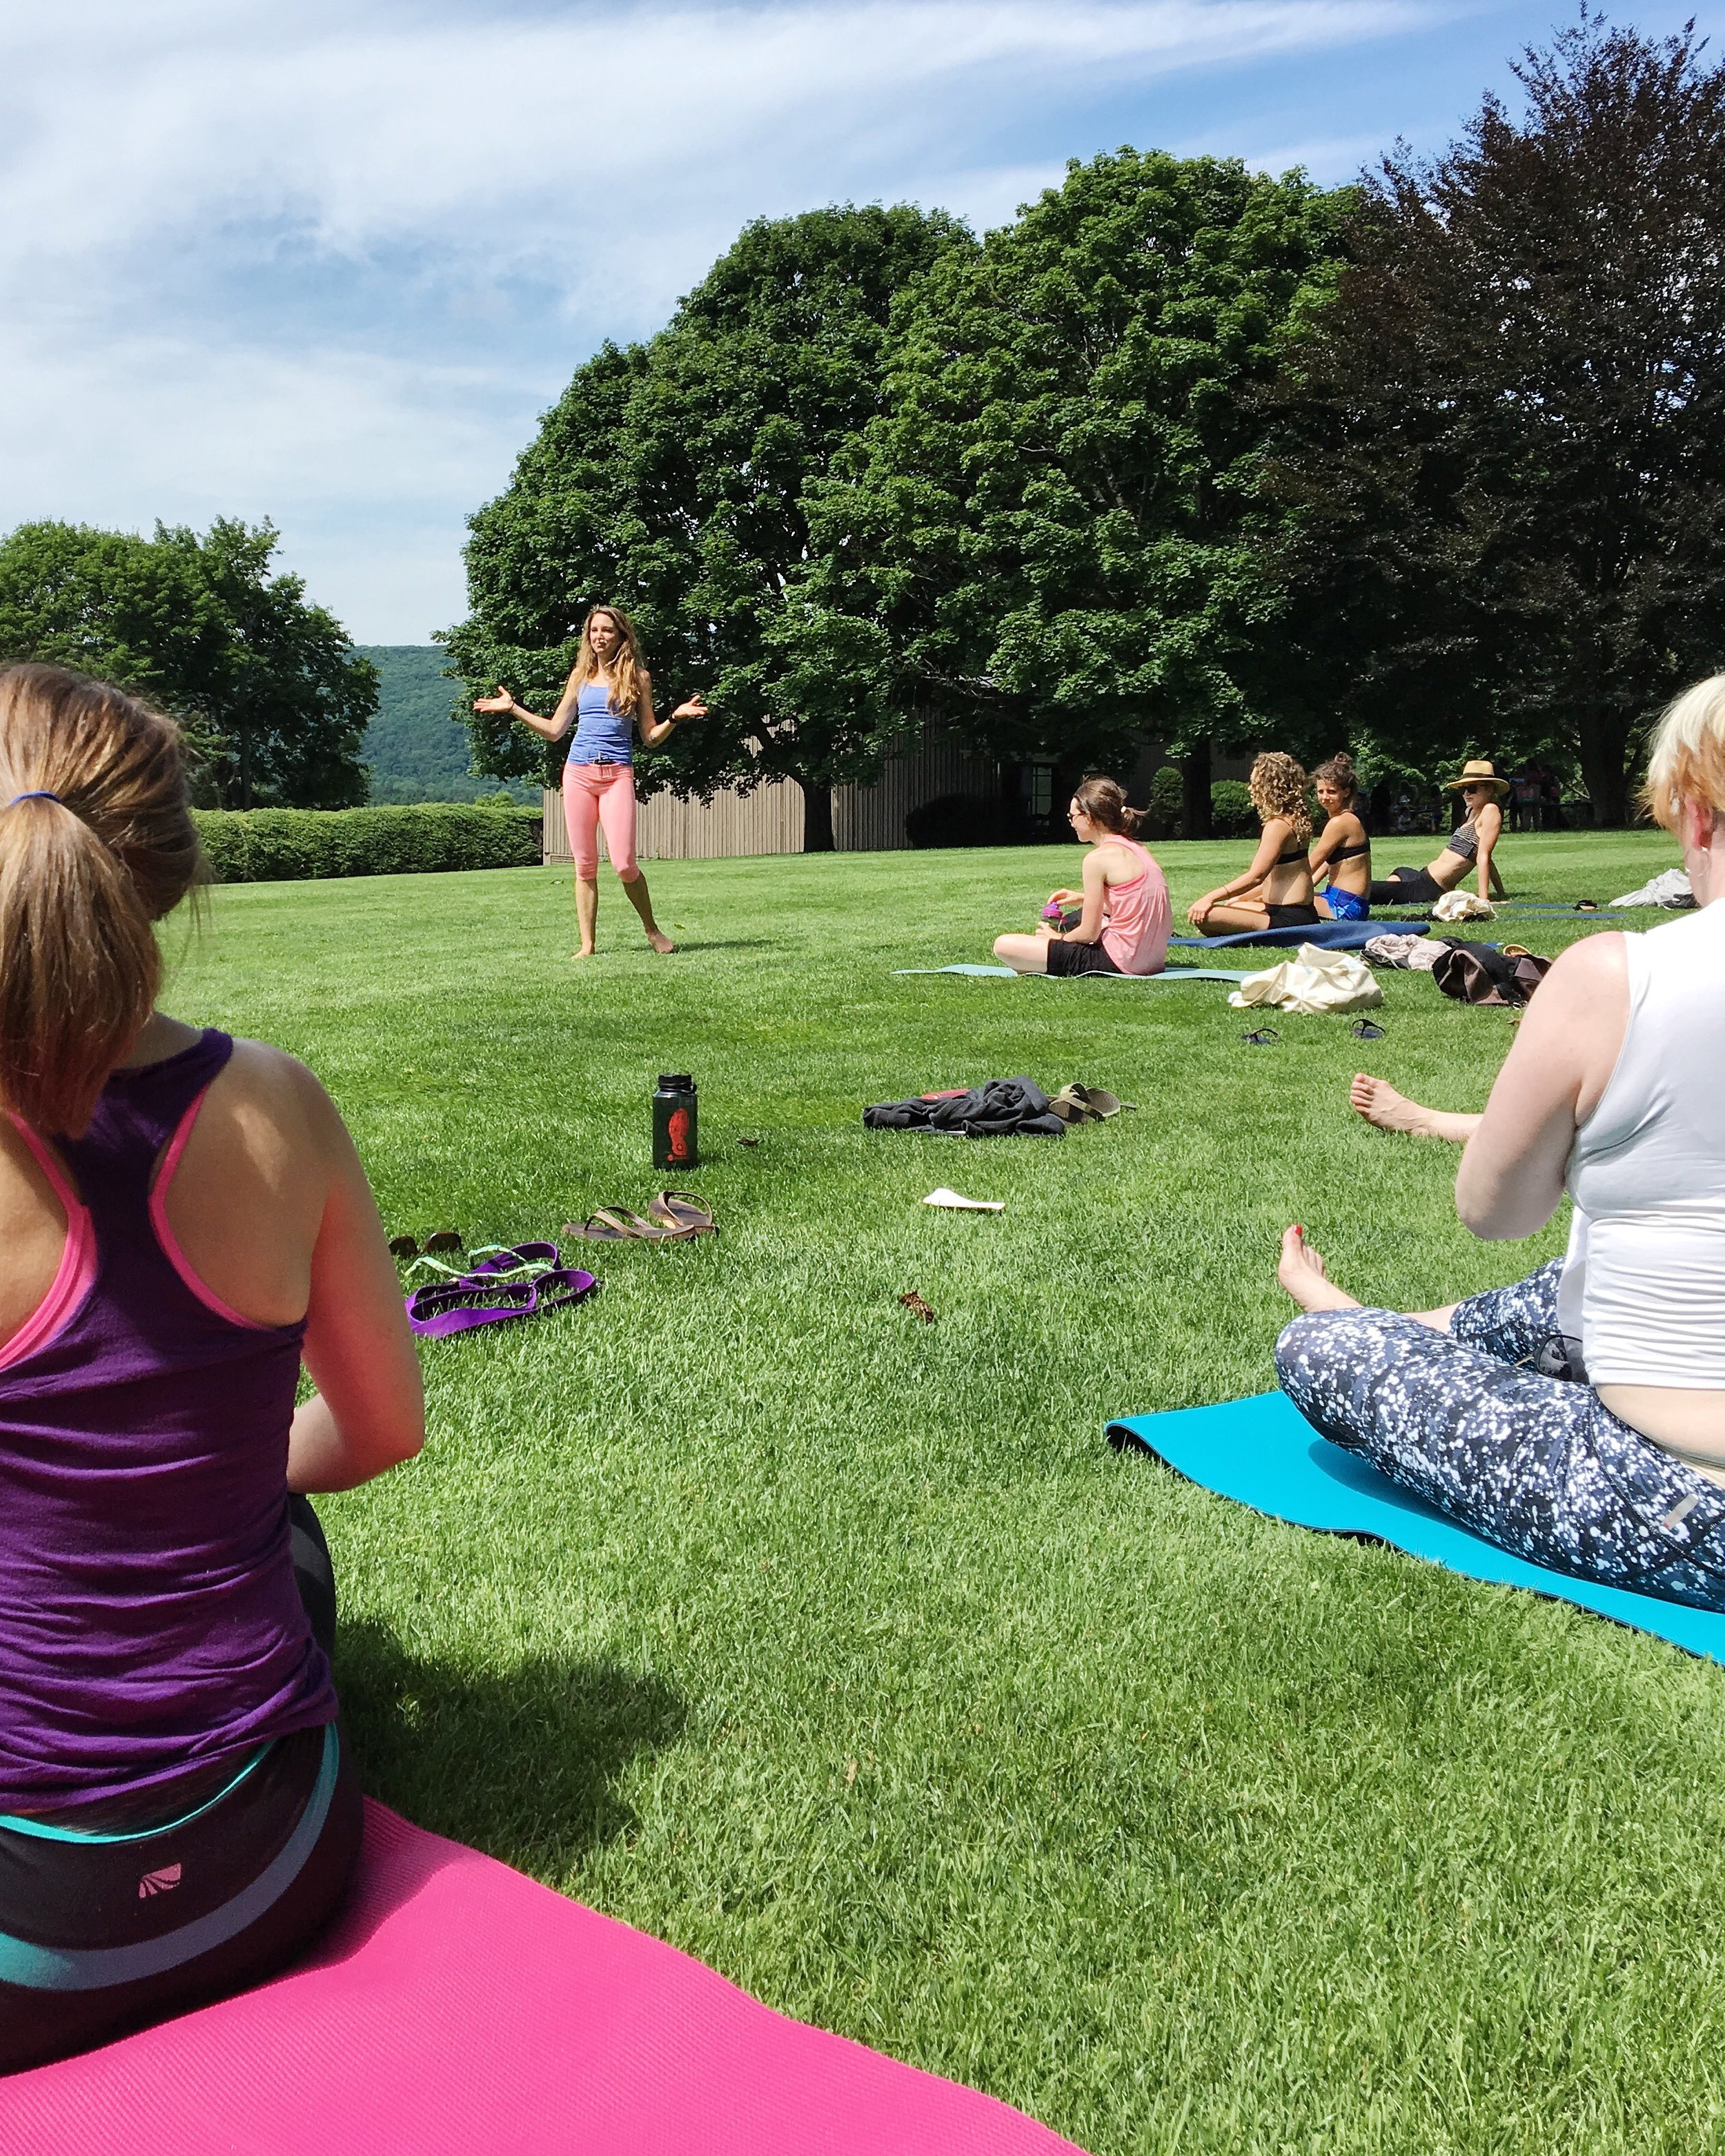 Kripalu Yoga instructor in action.